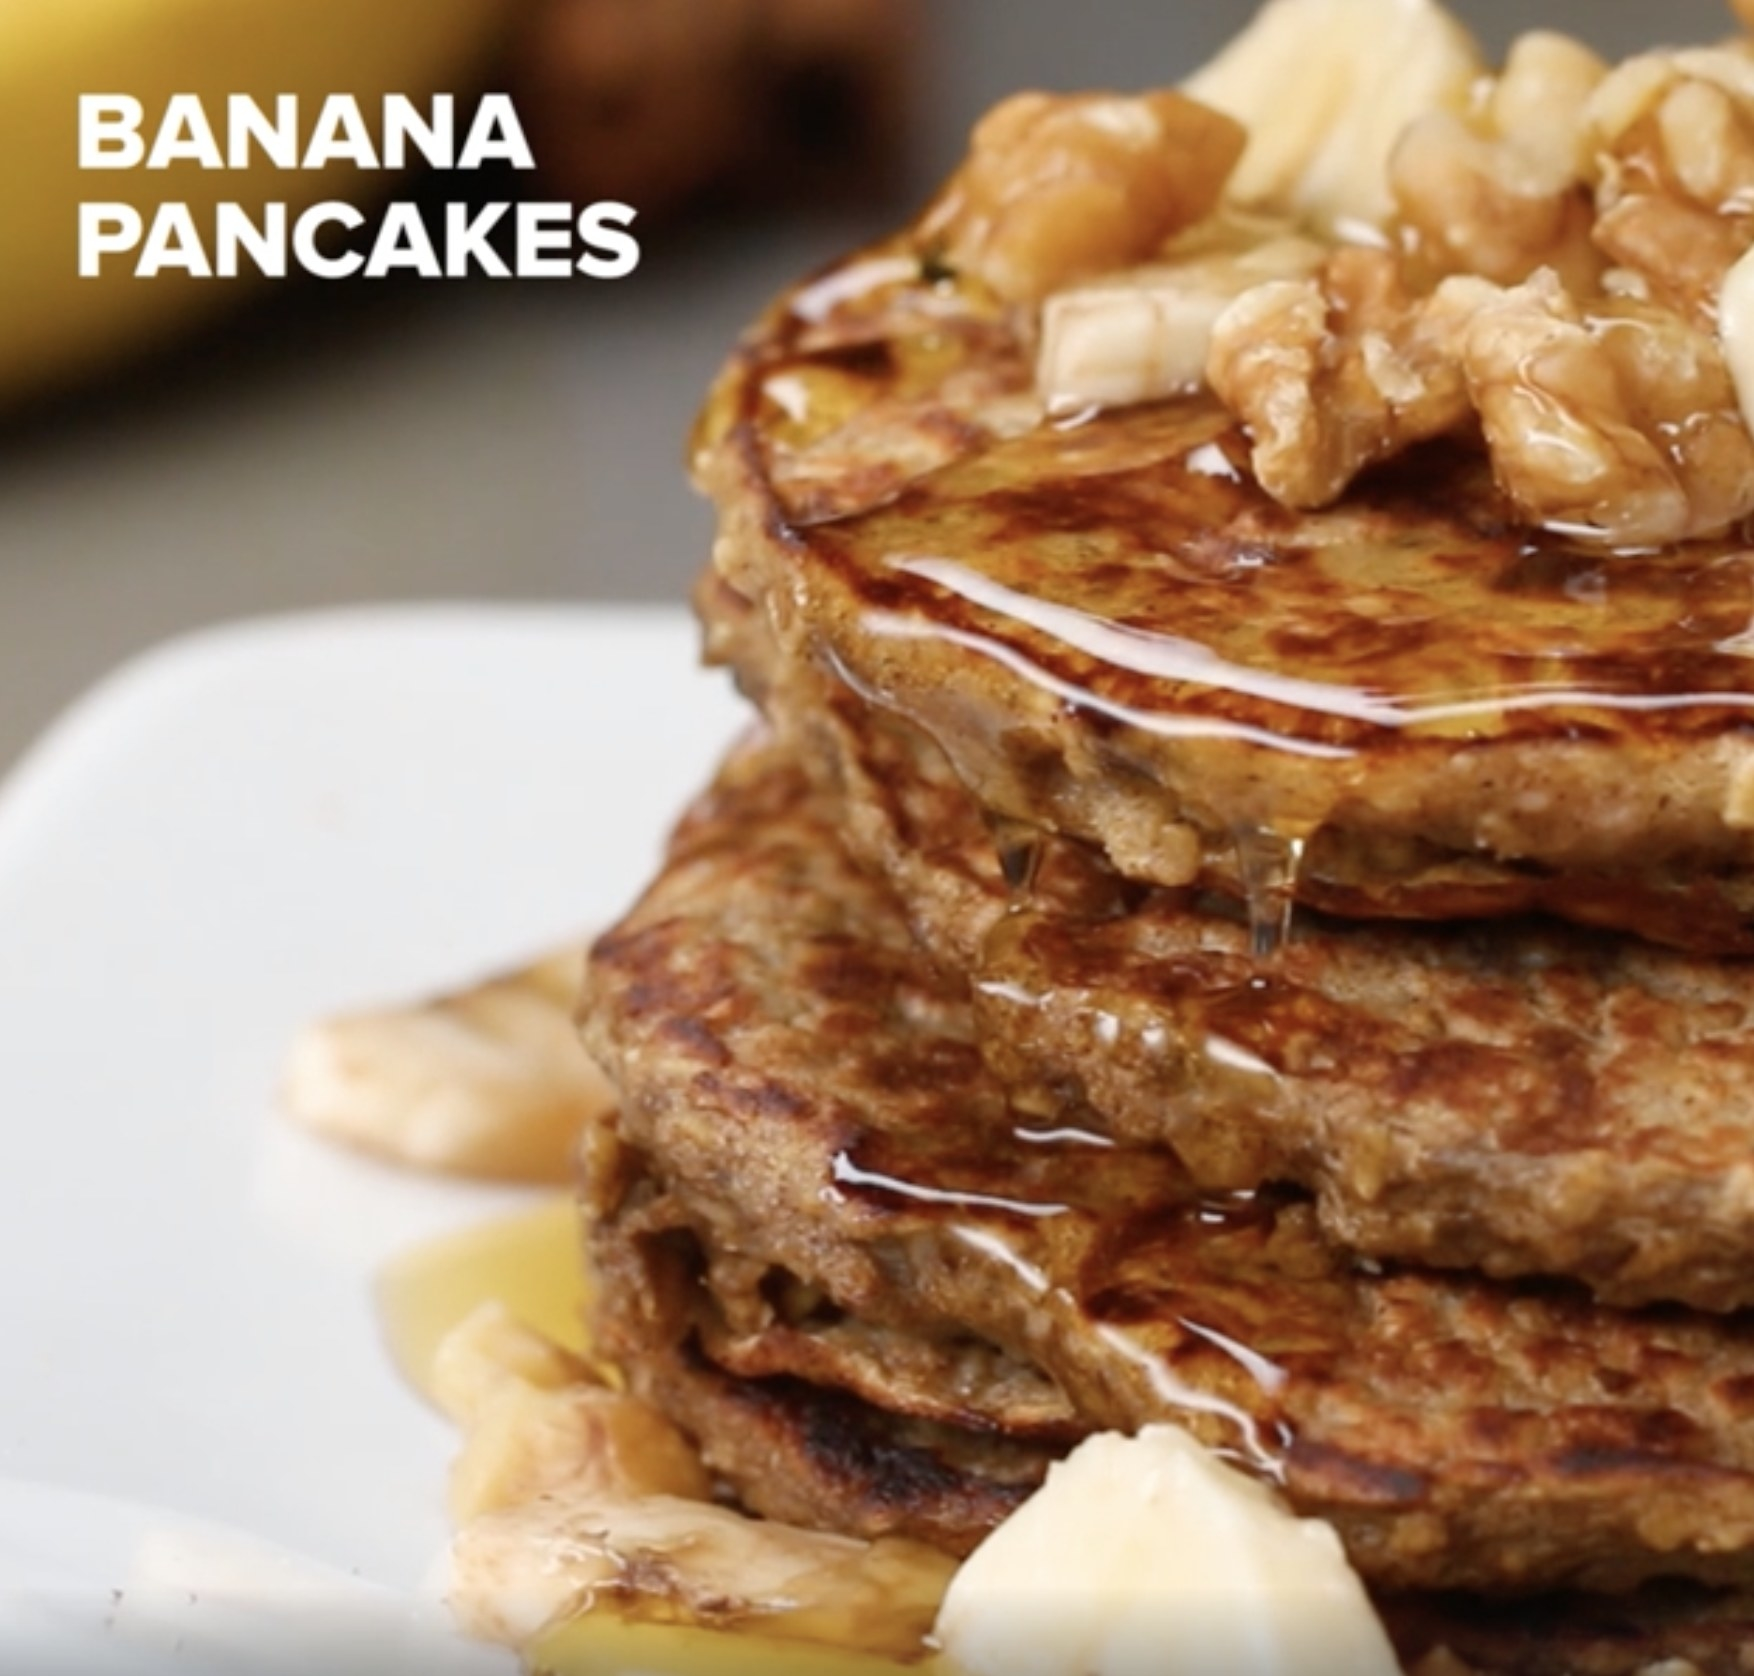 A plate of banana pancakes with syrup and walnuts